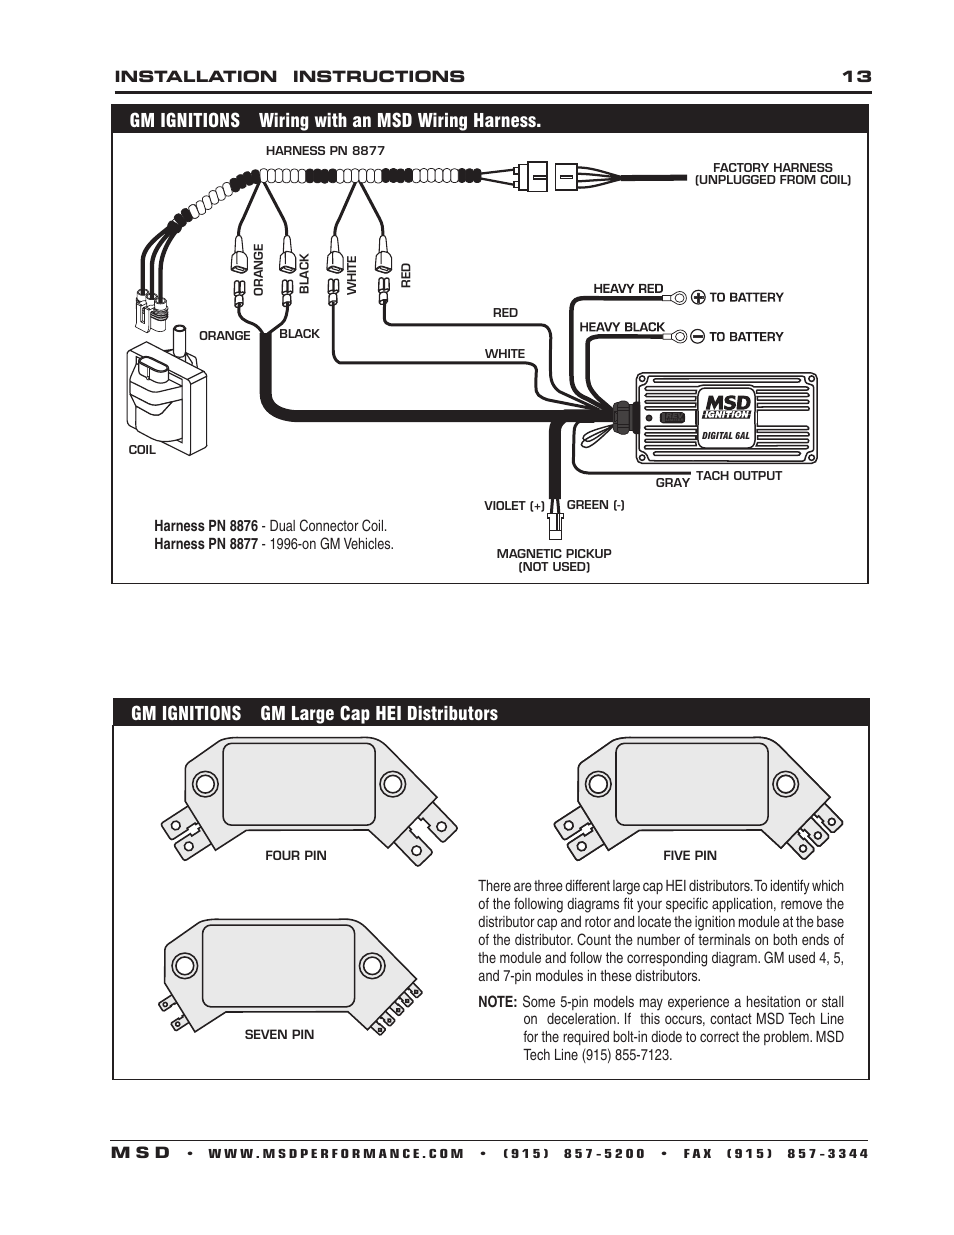 gm ignitions wiring an msd wiring harness gm ignitions gm gm ignitions wiring an msd wiring harness gm ignitions gm large cap hei distributors msd 6201 digital 6a ignition control user manual page 13 20